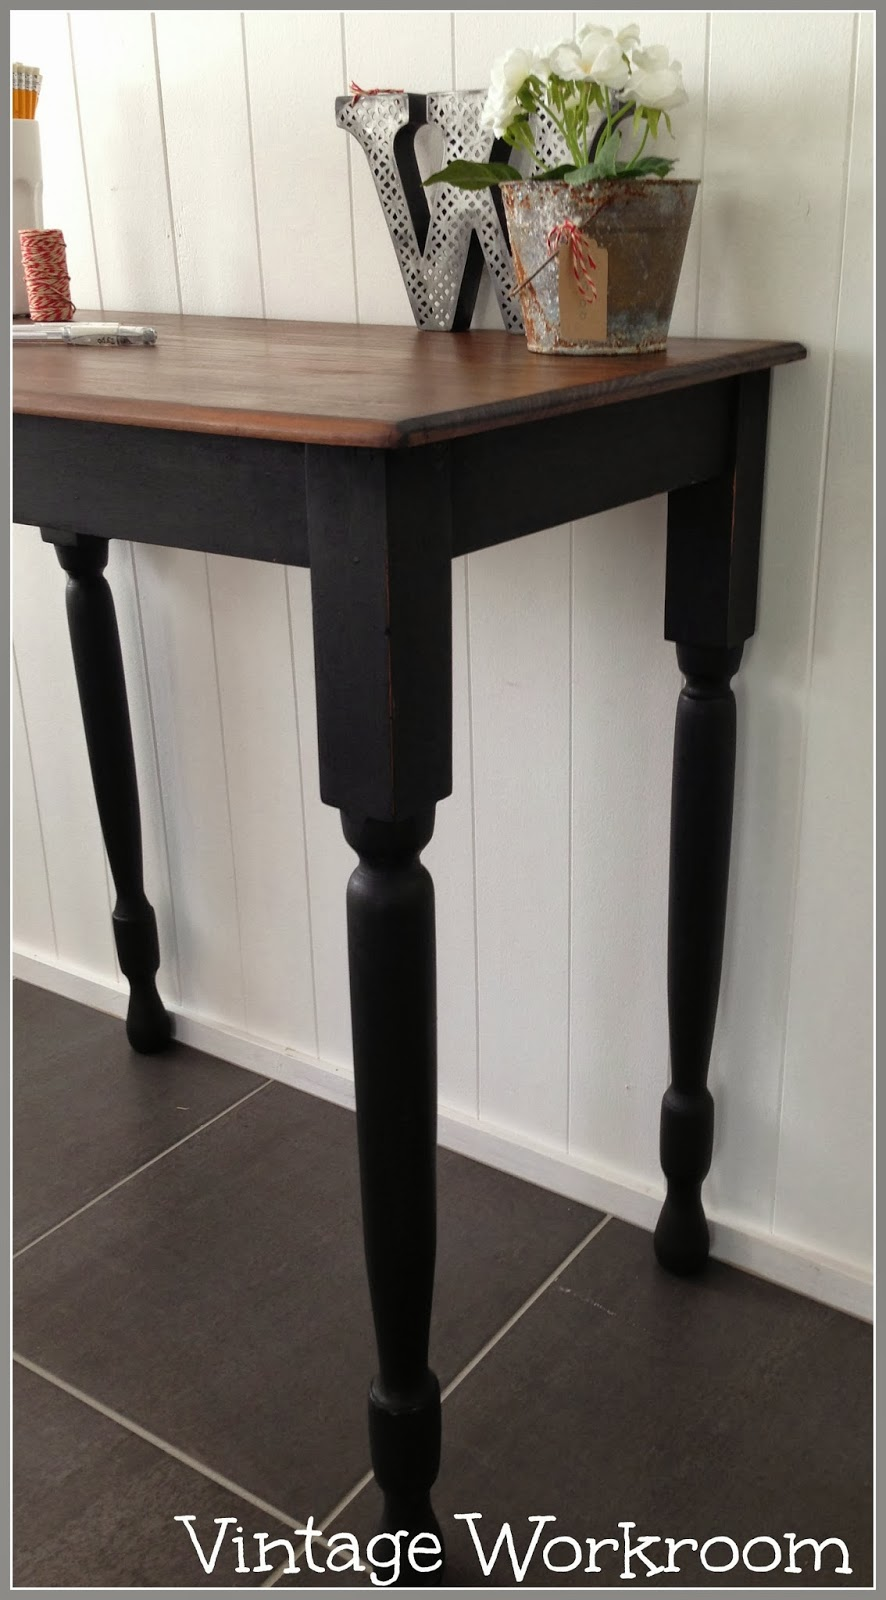 Vintage Workroom Vintage Hall table